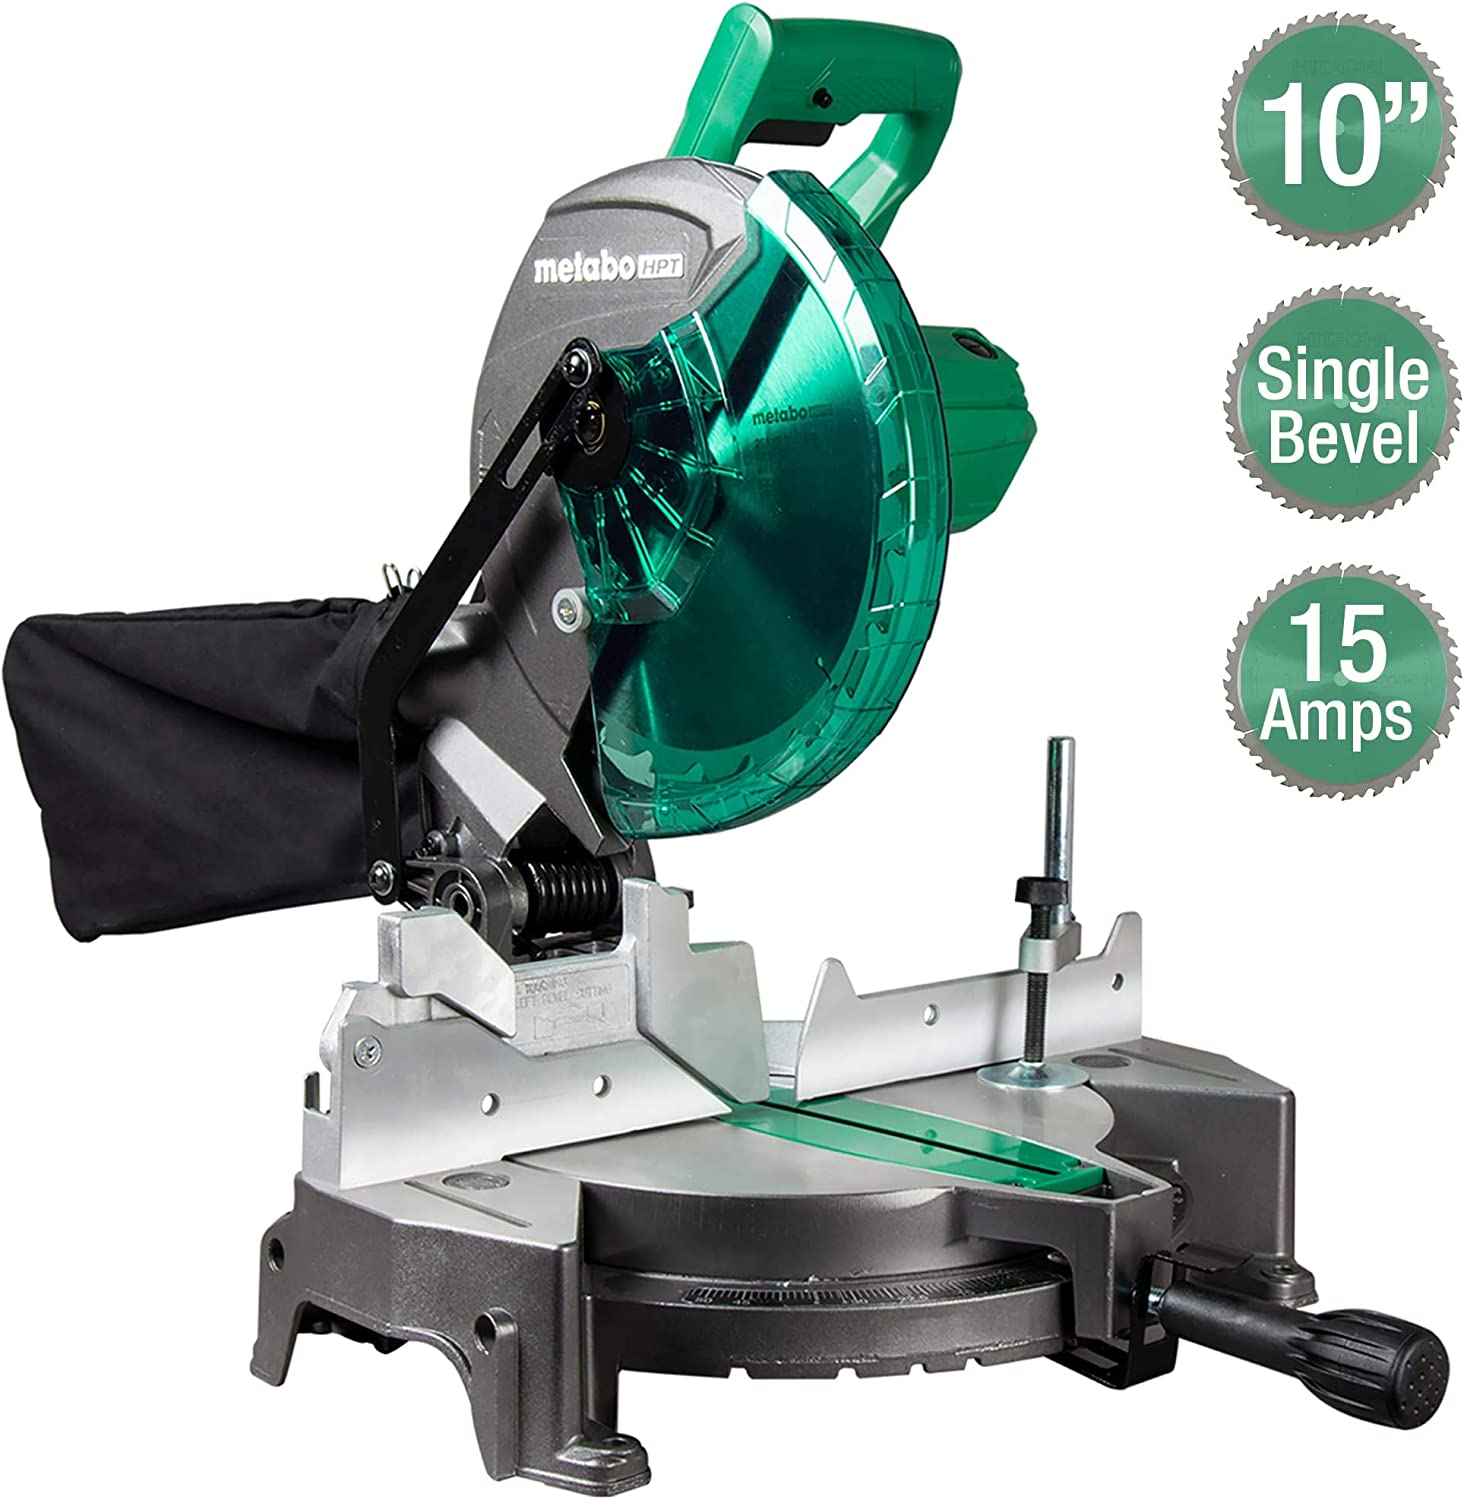 Metabo HPT C10FCGS Compound Miter Saw, 10-Inch, Single Bevel